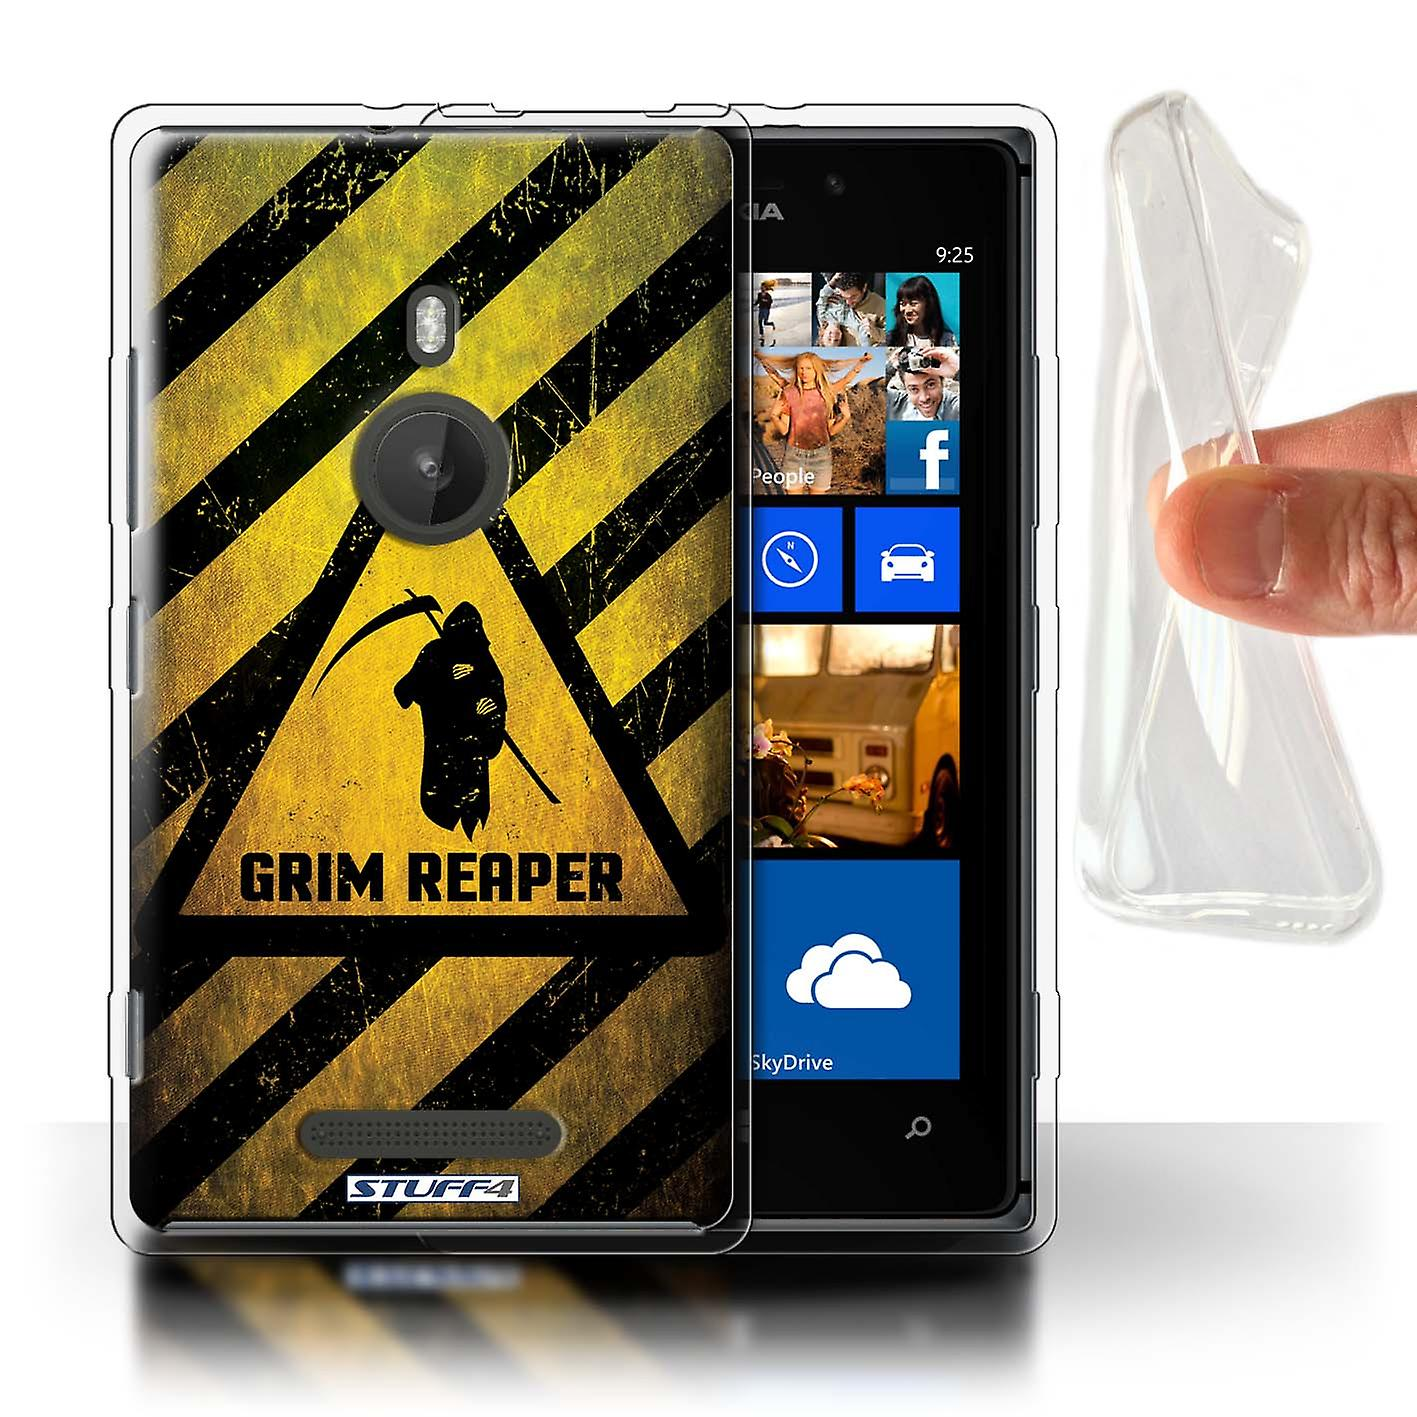 STUFF4 Gel TPU Case/Cover for Nokia Lumia 925/Death/Reaper/Hazard Warning Signs